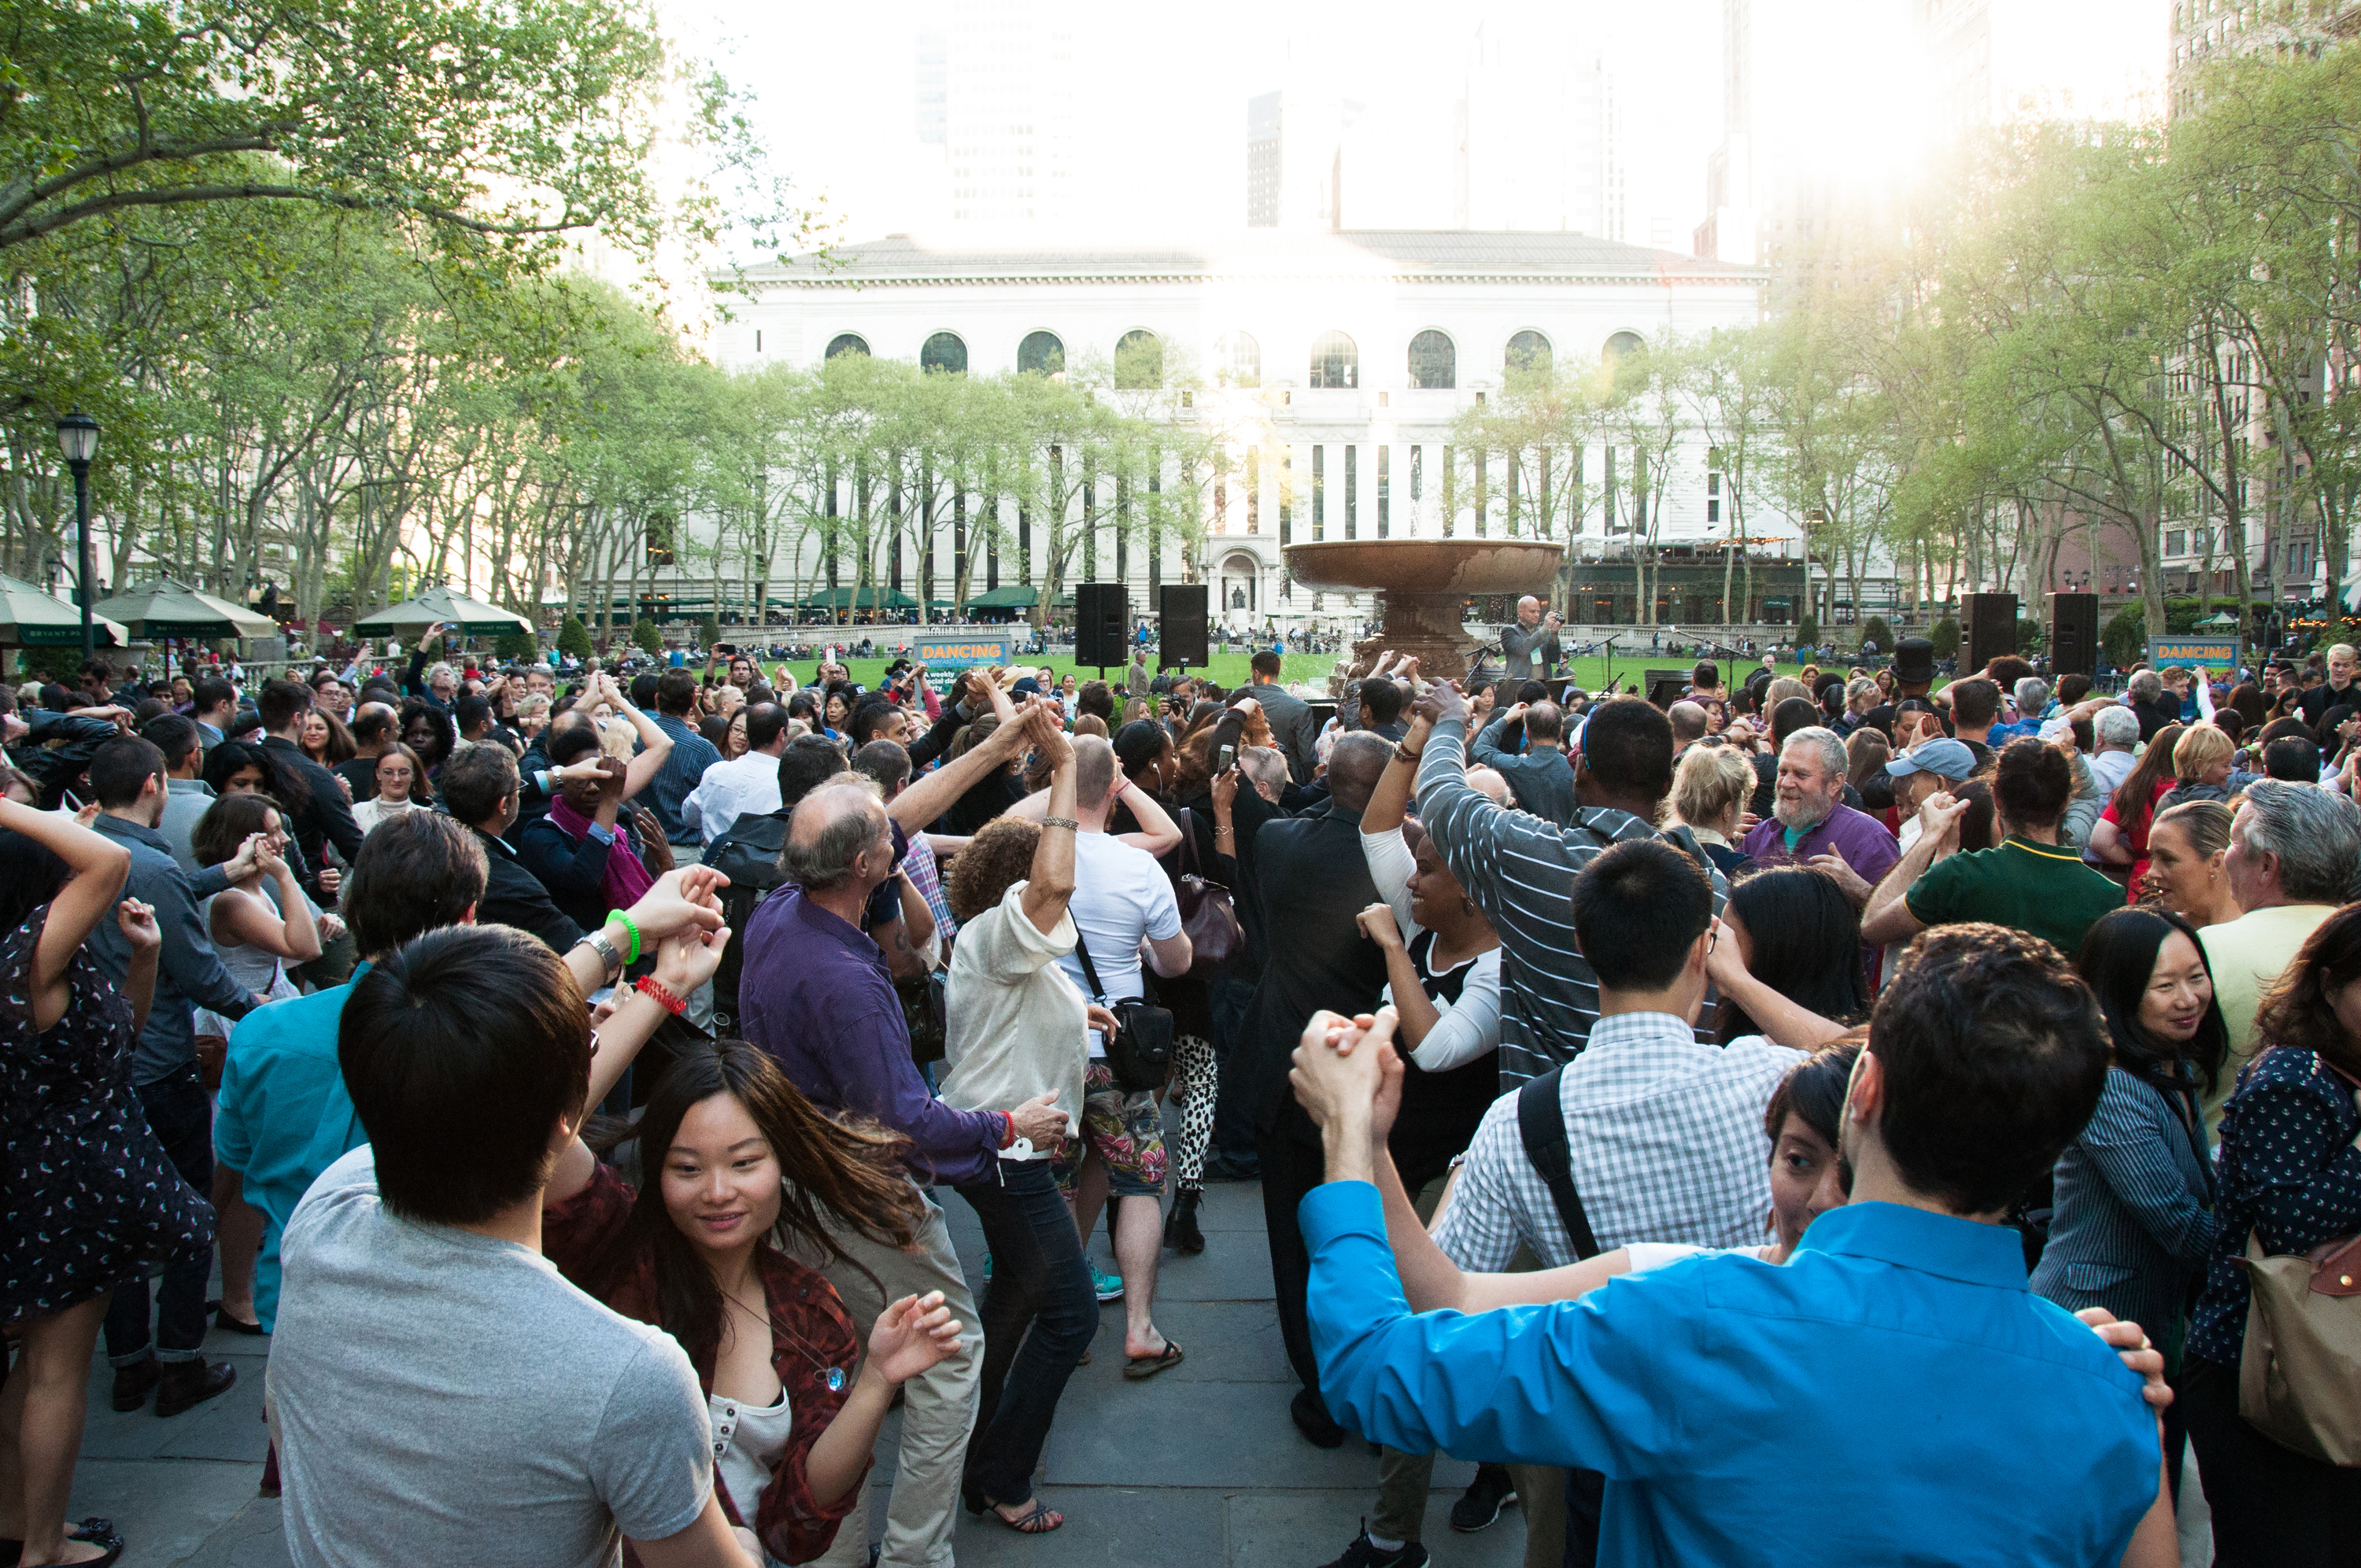 Bryant Park's epic outdoor dance parties are back next month